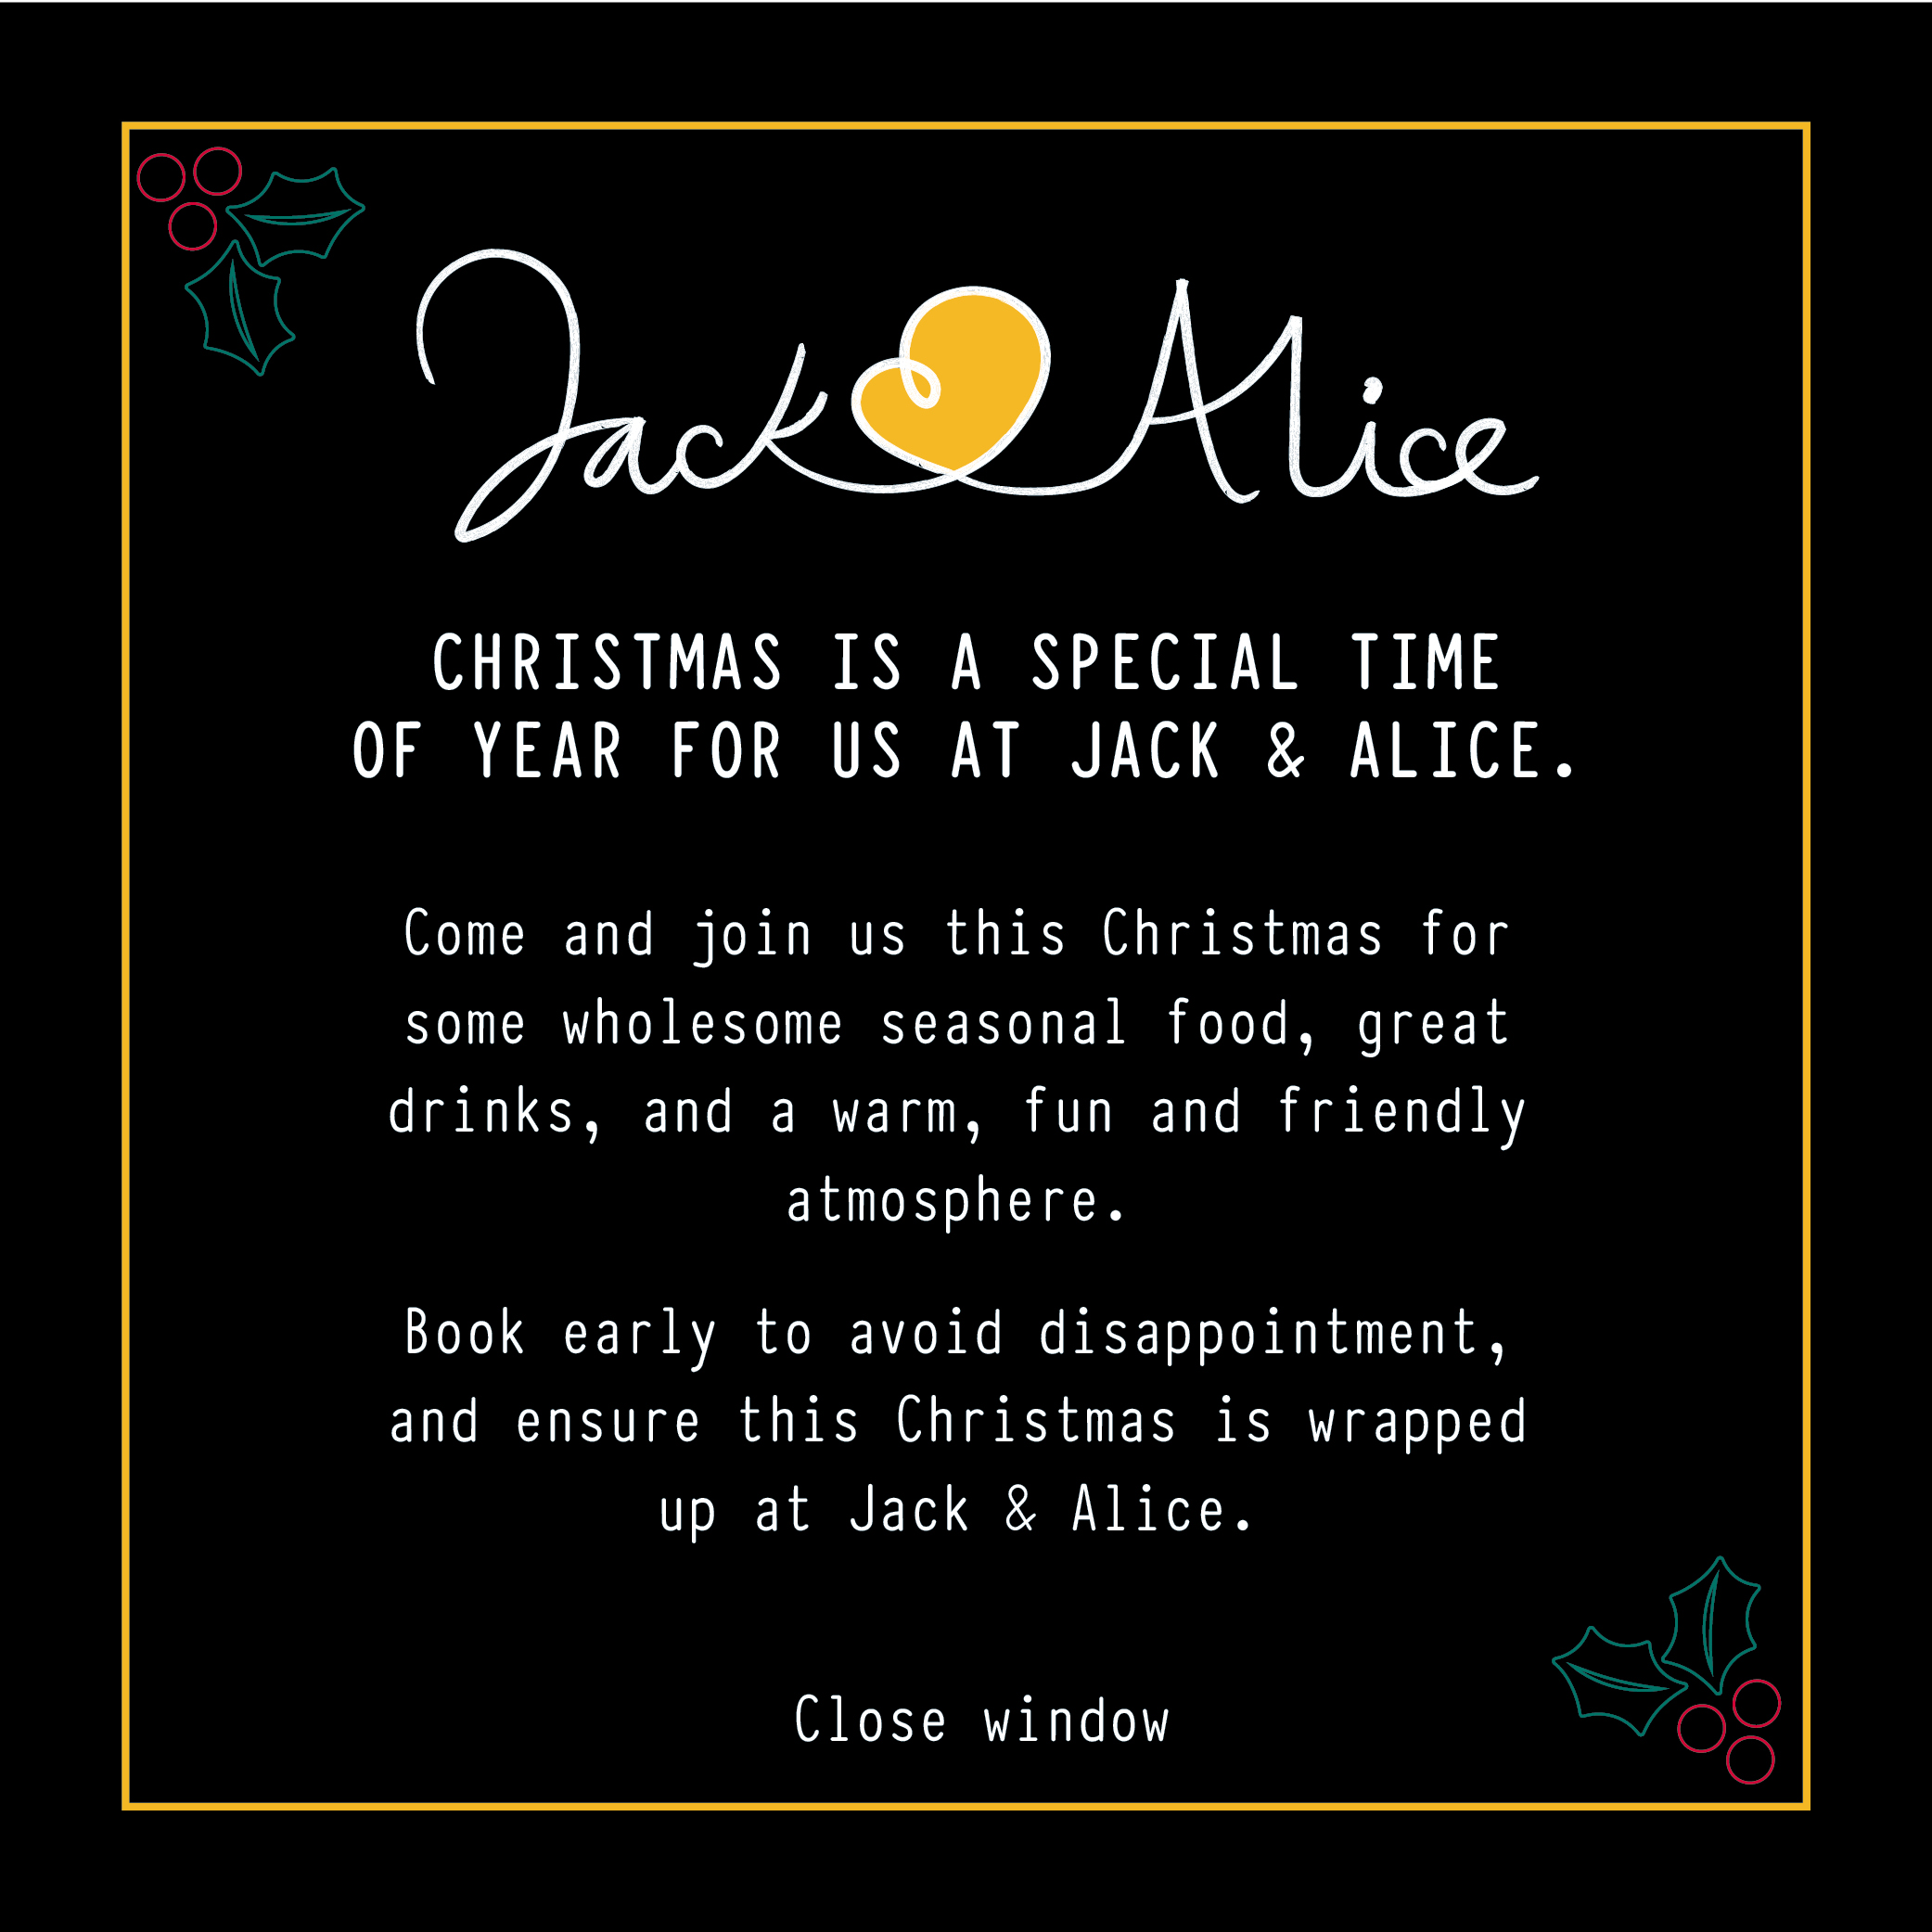 Christmas at Jack and Alice